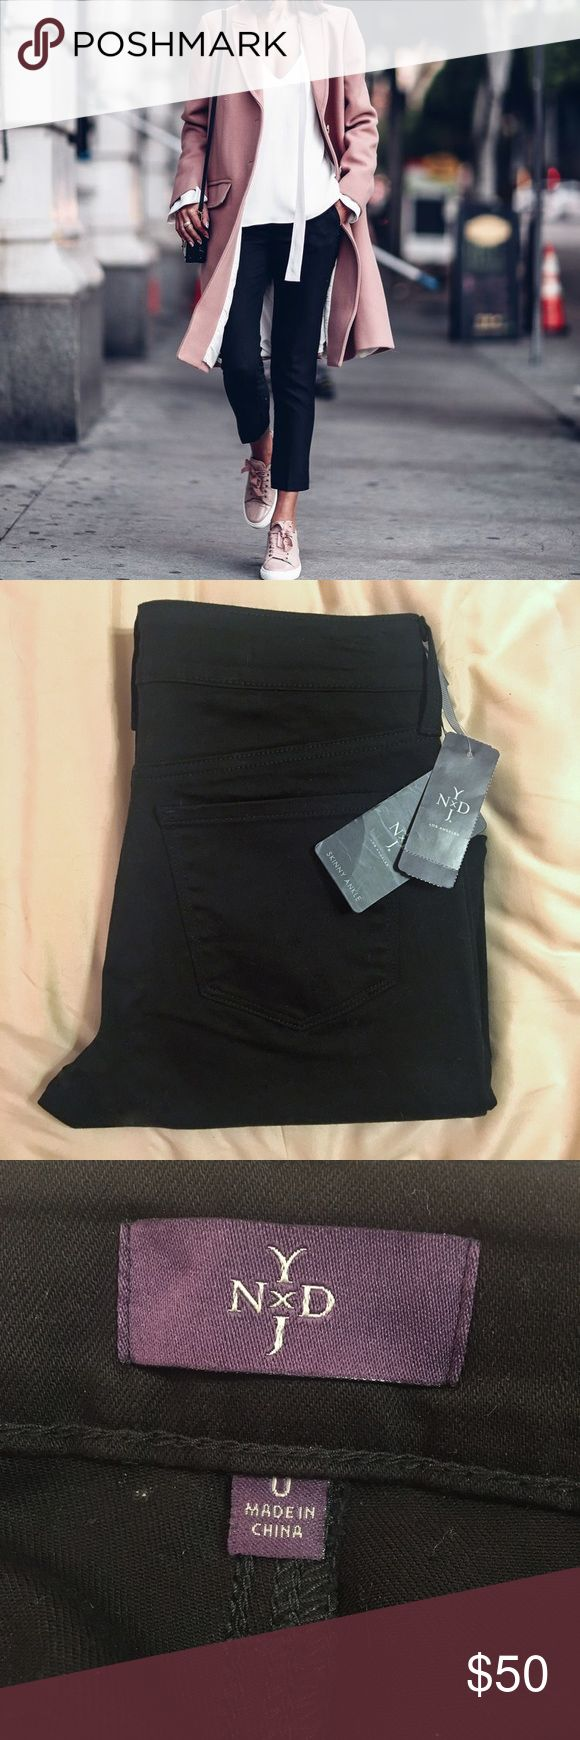 Black Skinny Ankle Jeans NWT NYDJ black skinny ankle jeans. Perfect condition & a staple piece. 🖤 NYDJ Jeans Ankle & Cropped